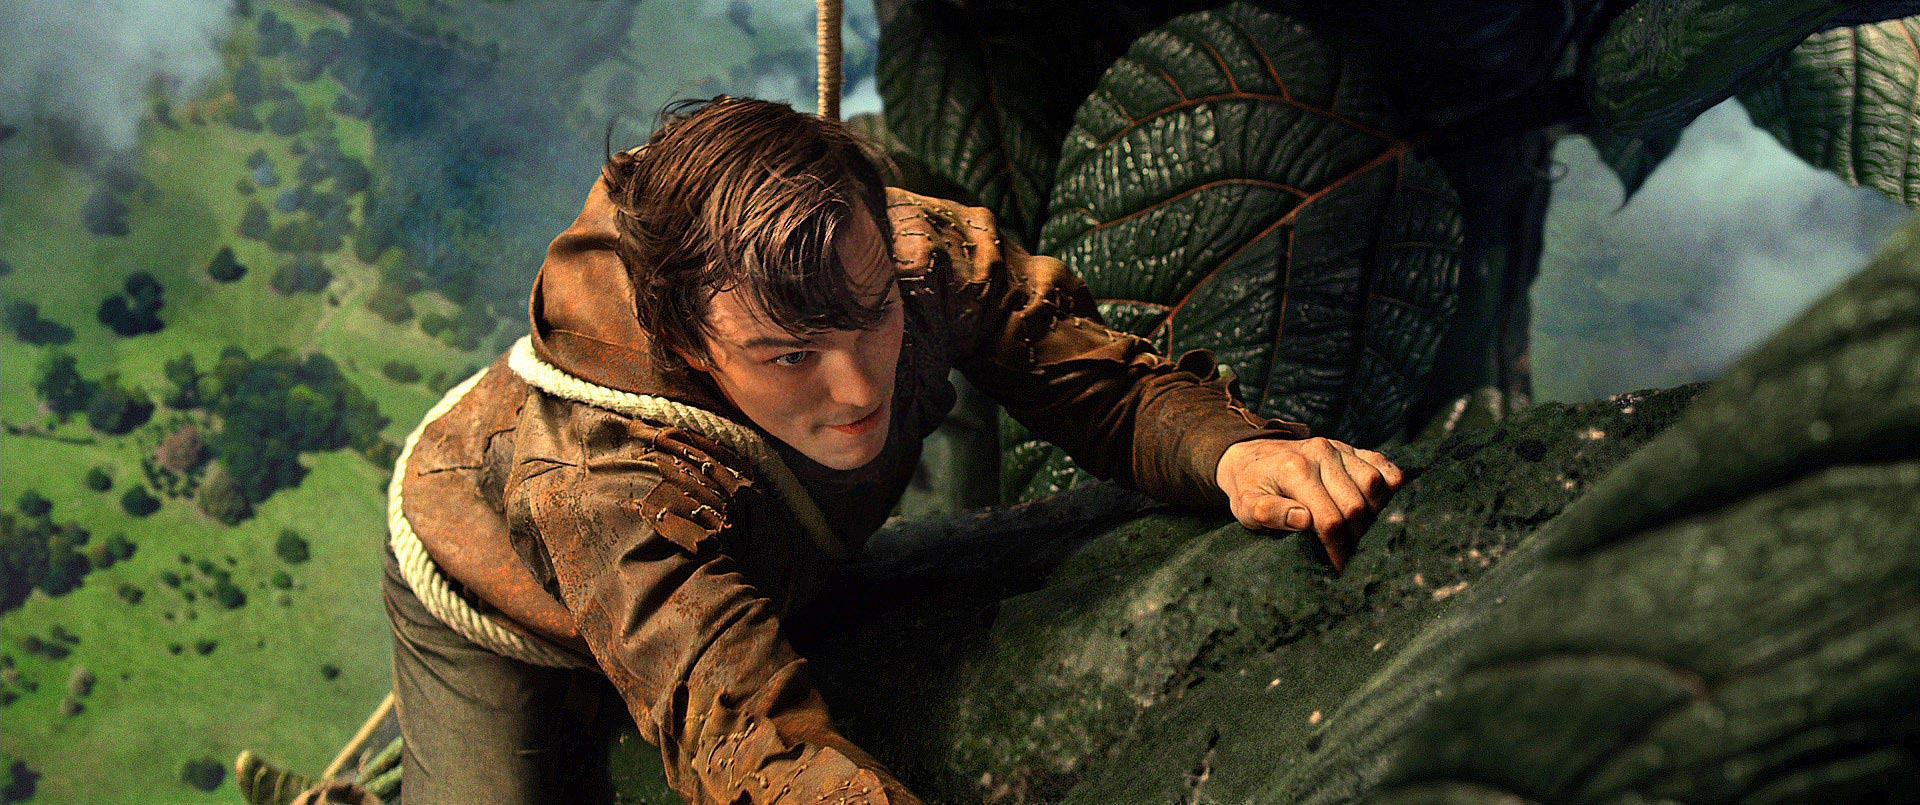 Jack The Giant Slayer Movie Review Box Office Report: Jack the Giant Slayer Easily Climbs to the Top